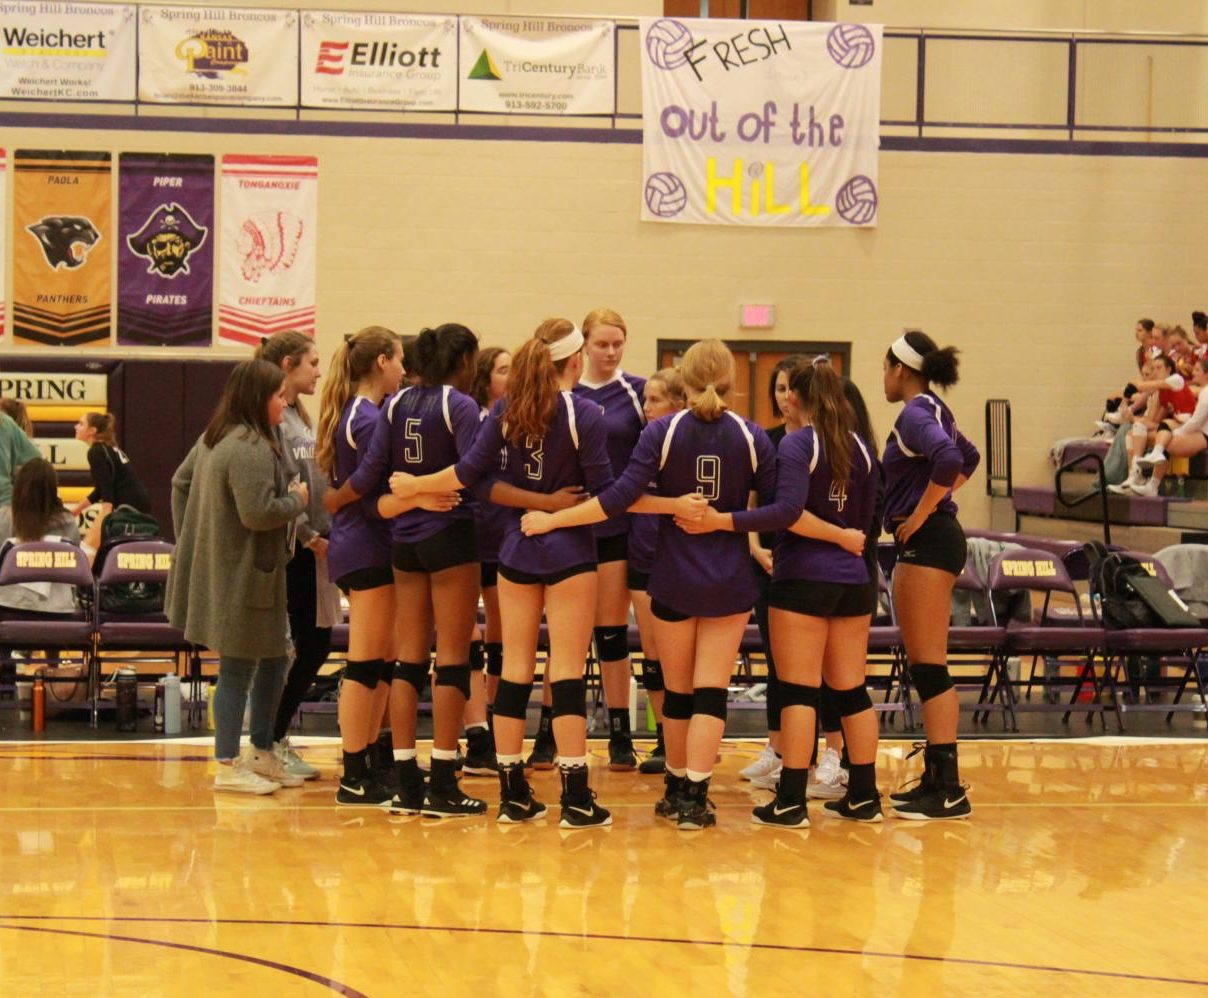 The team huddles together before their game at the Spring Hill tournament on Oct. 5. The team agrees that this has brought them closer together.